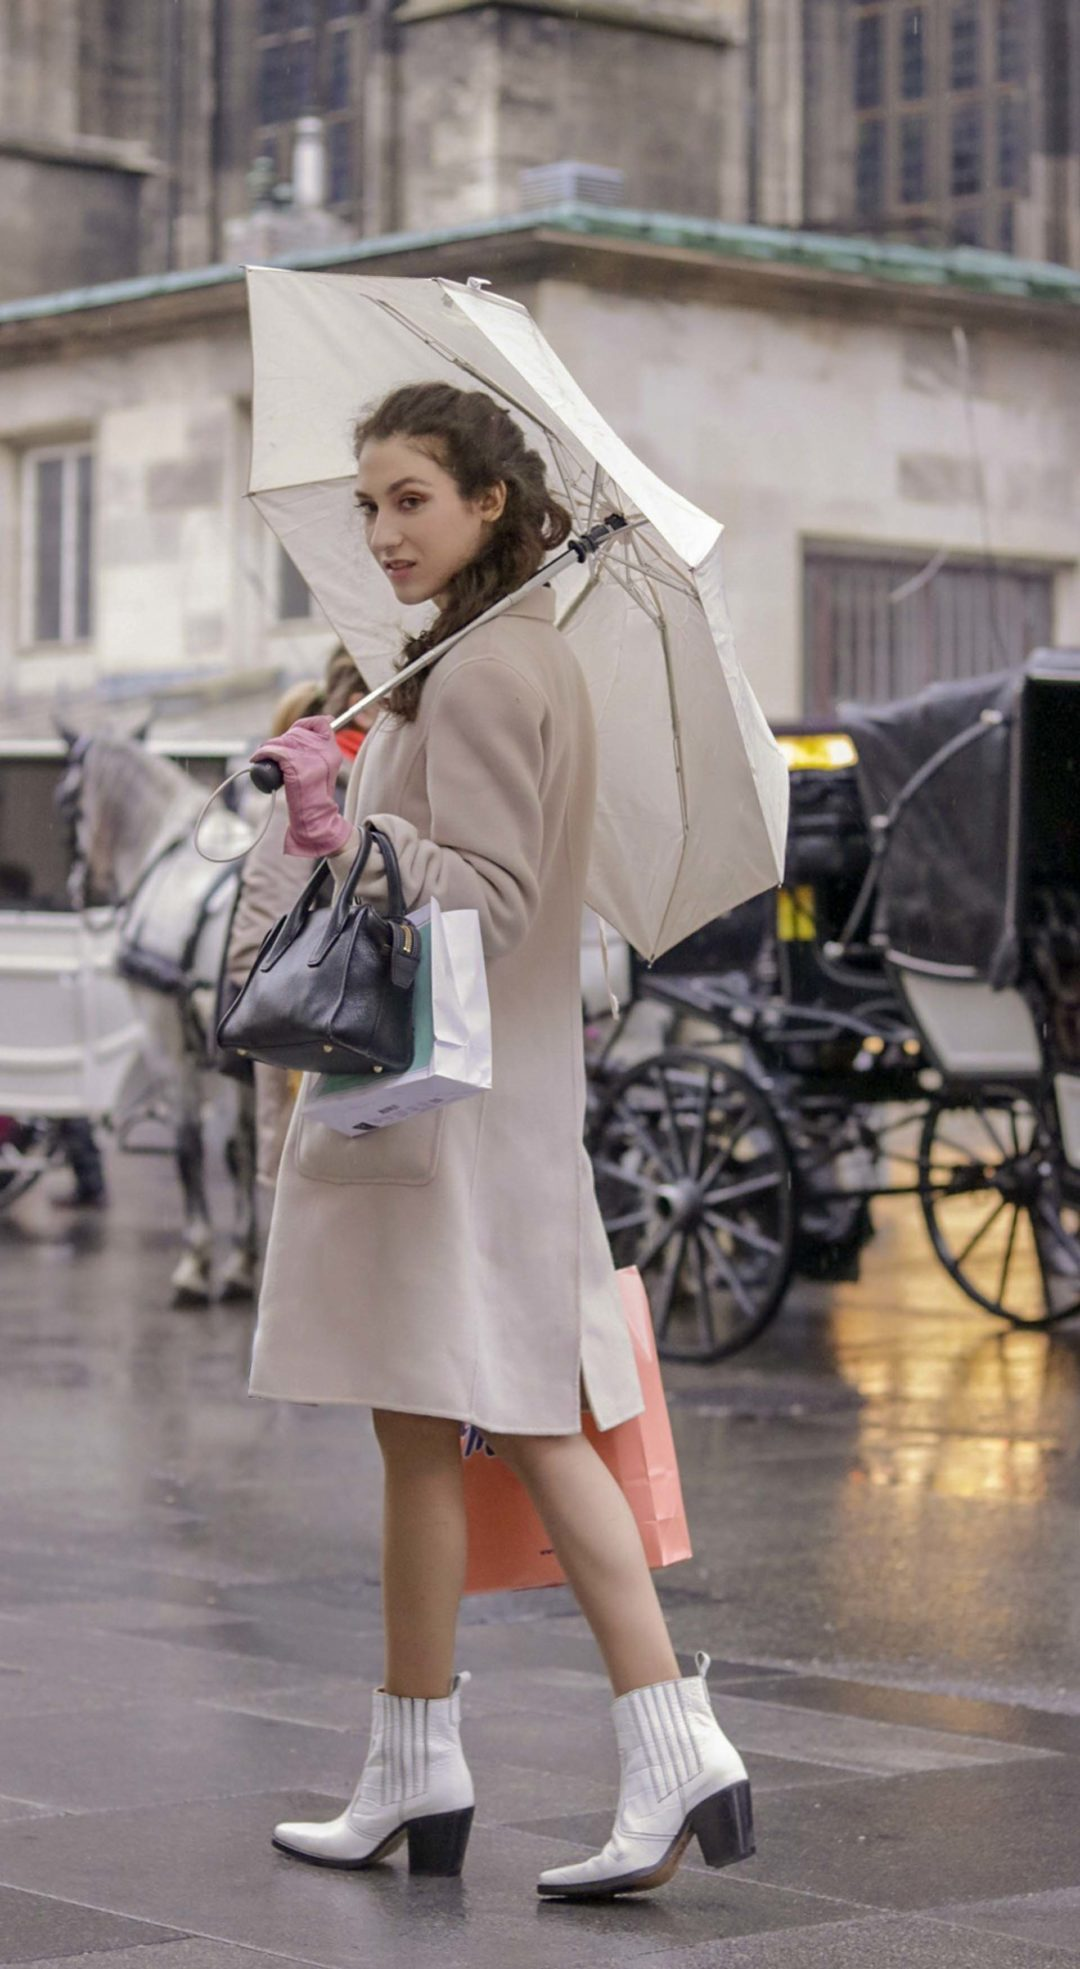 Beautiful Slovenian Fashion Blogger Veronika Lipar of Brunette from Wall wearing Max Mara coat, Ganni white cowboy boots, holding umbrella in rain in Stephansplatz in Wein Austria